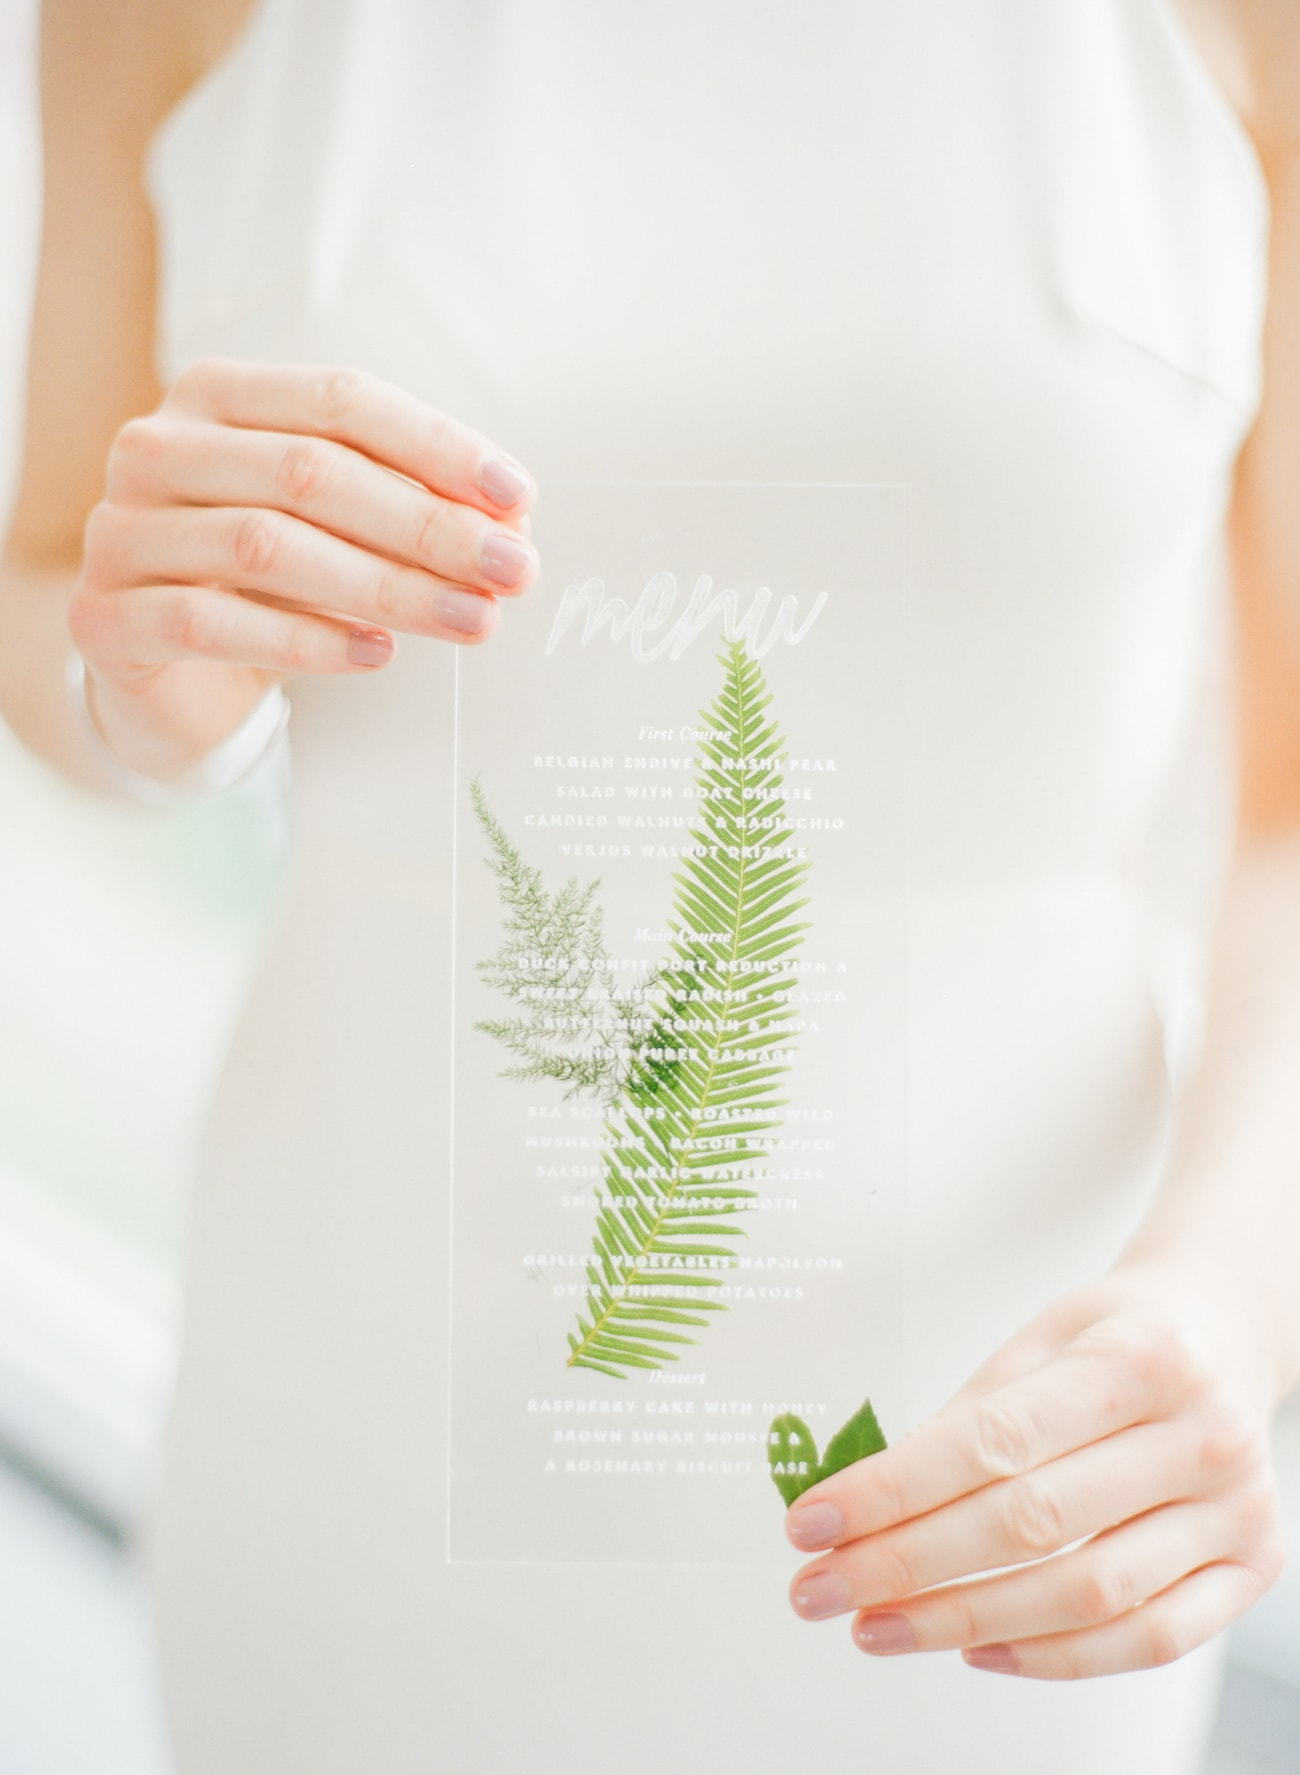 Transparent Wedding menu | Credit: Ruth Eileen Photography